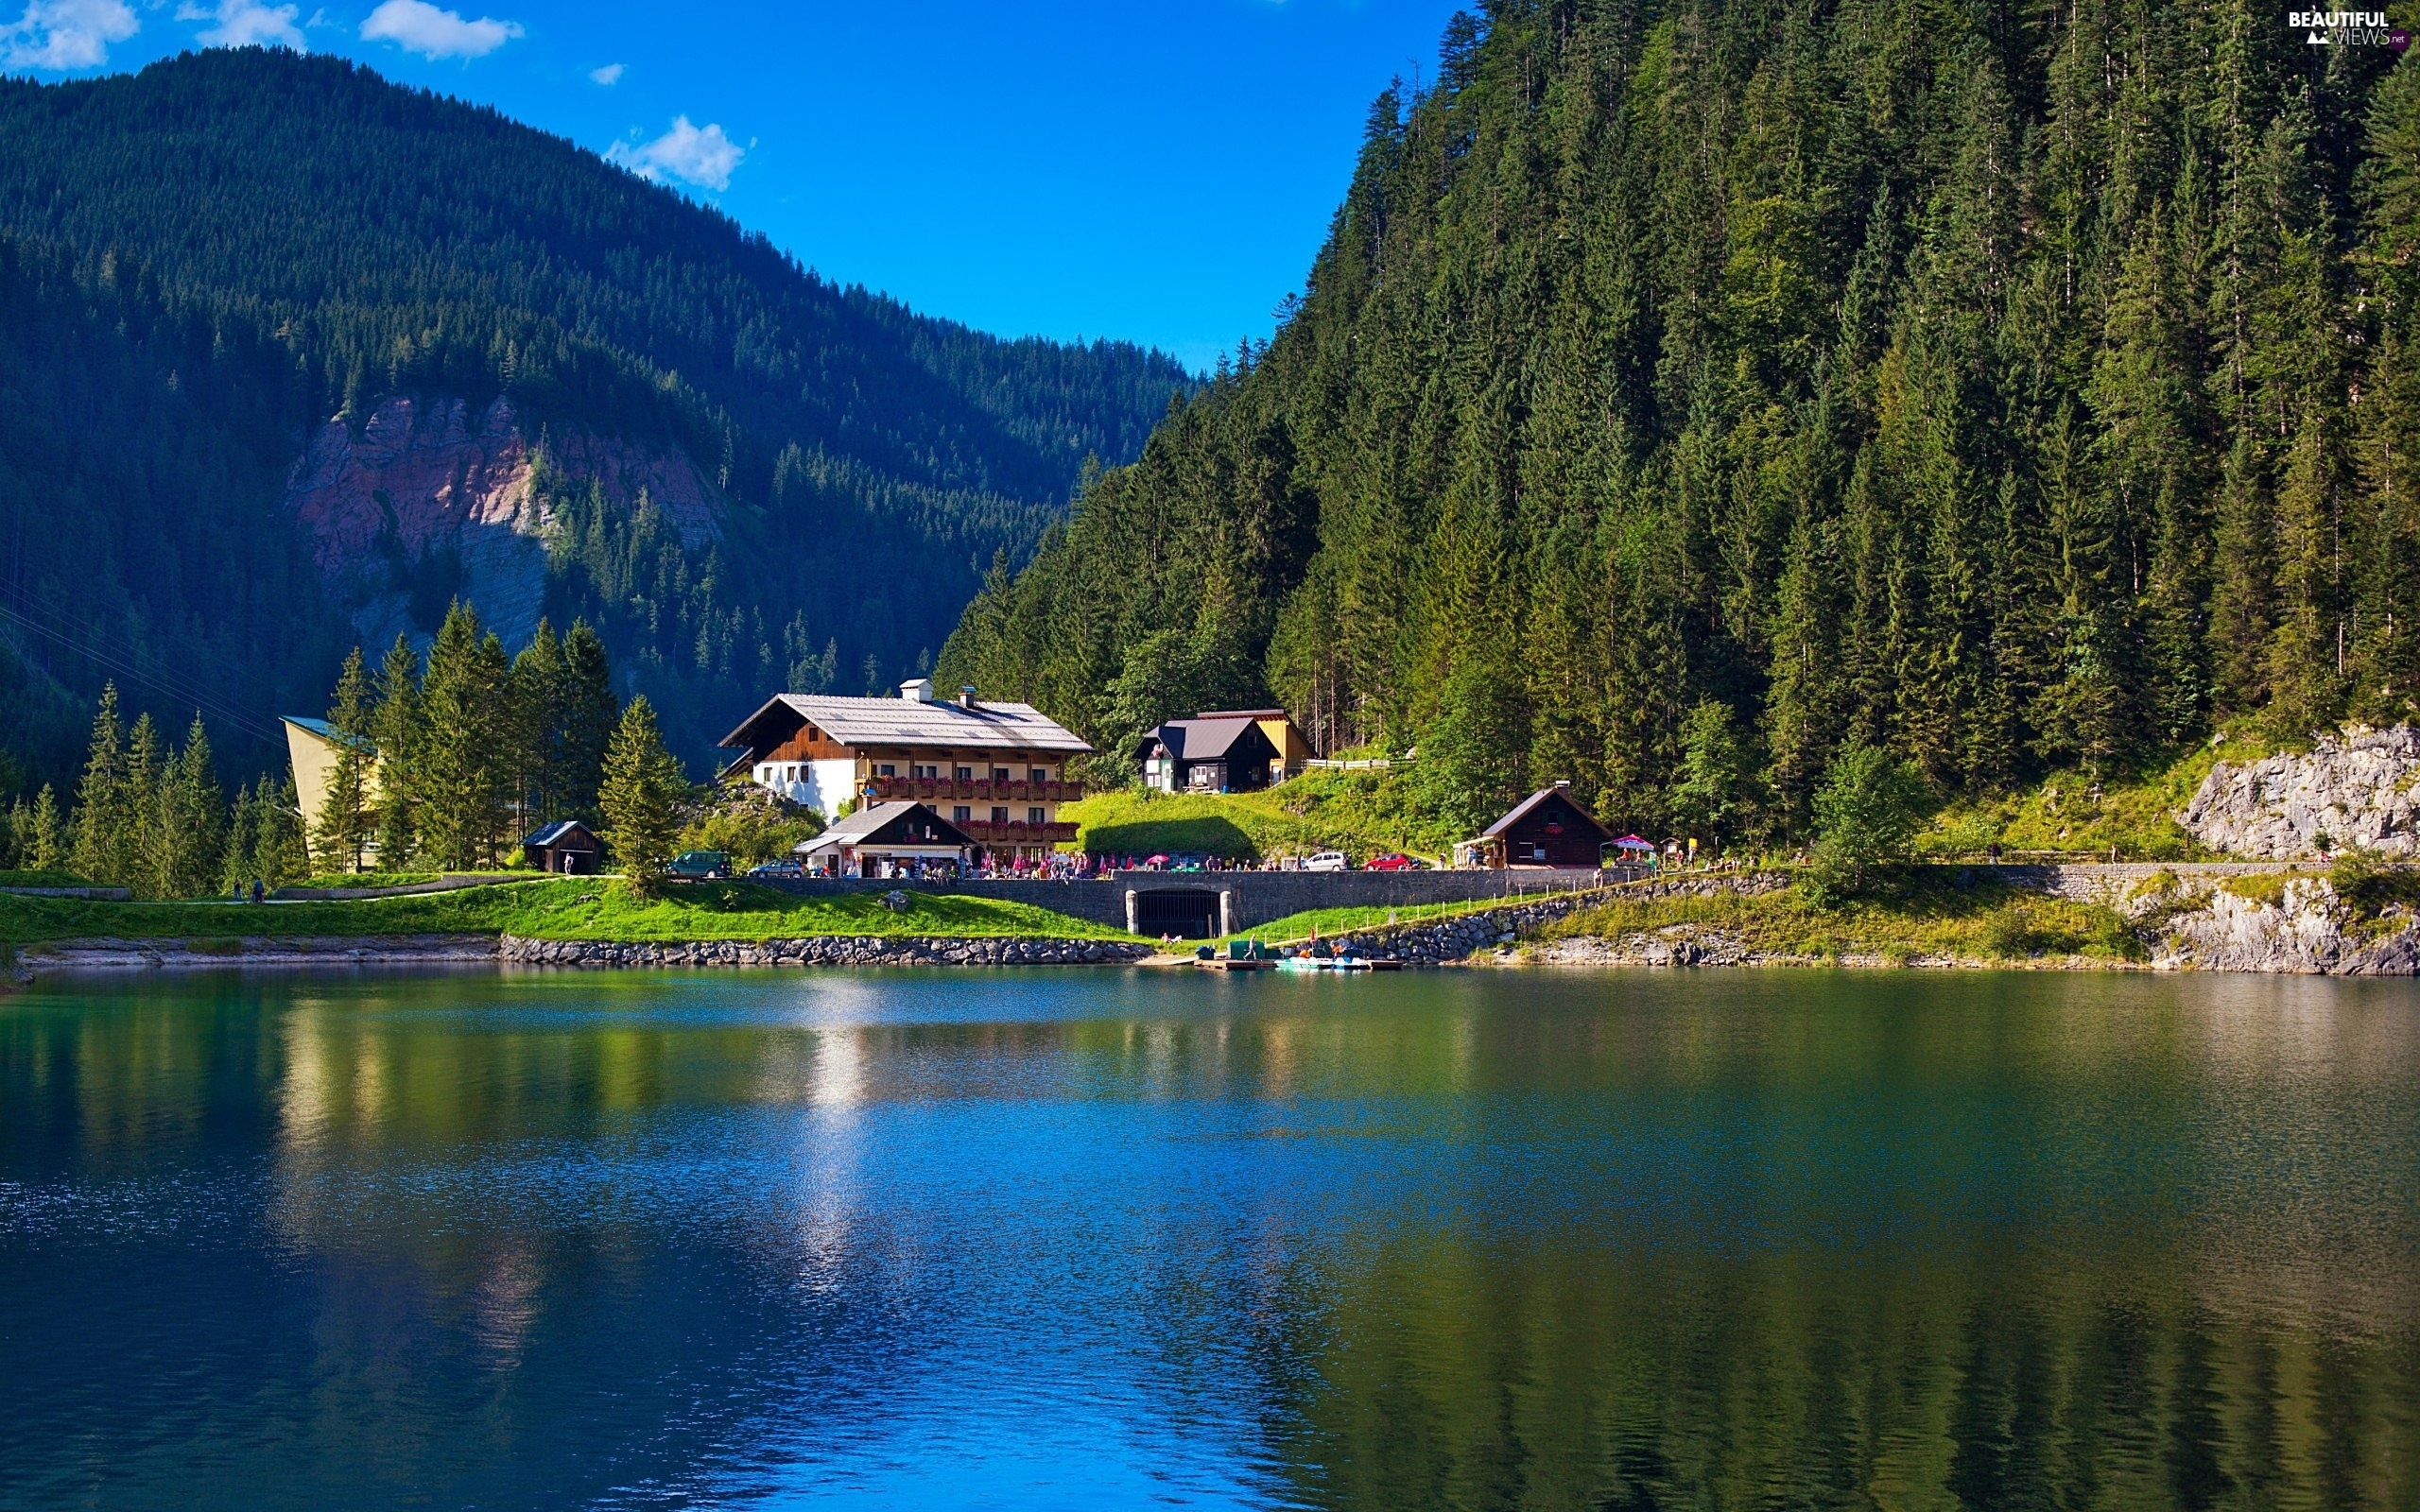 woods, Alps, Houses, landscape, lake, Mountains